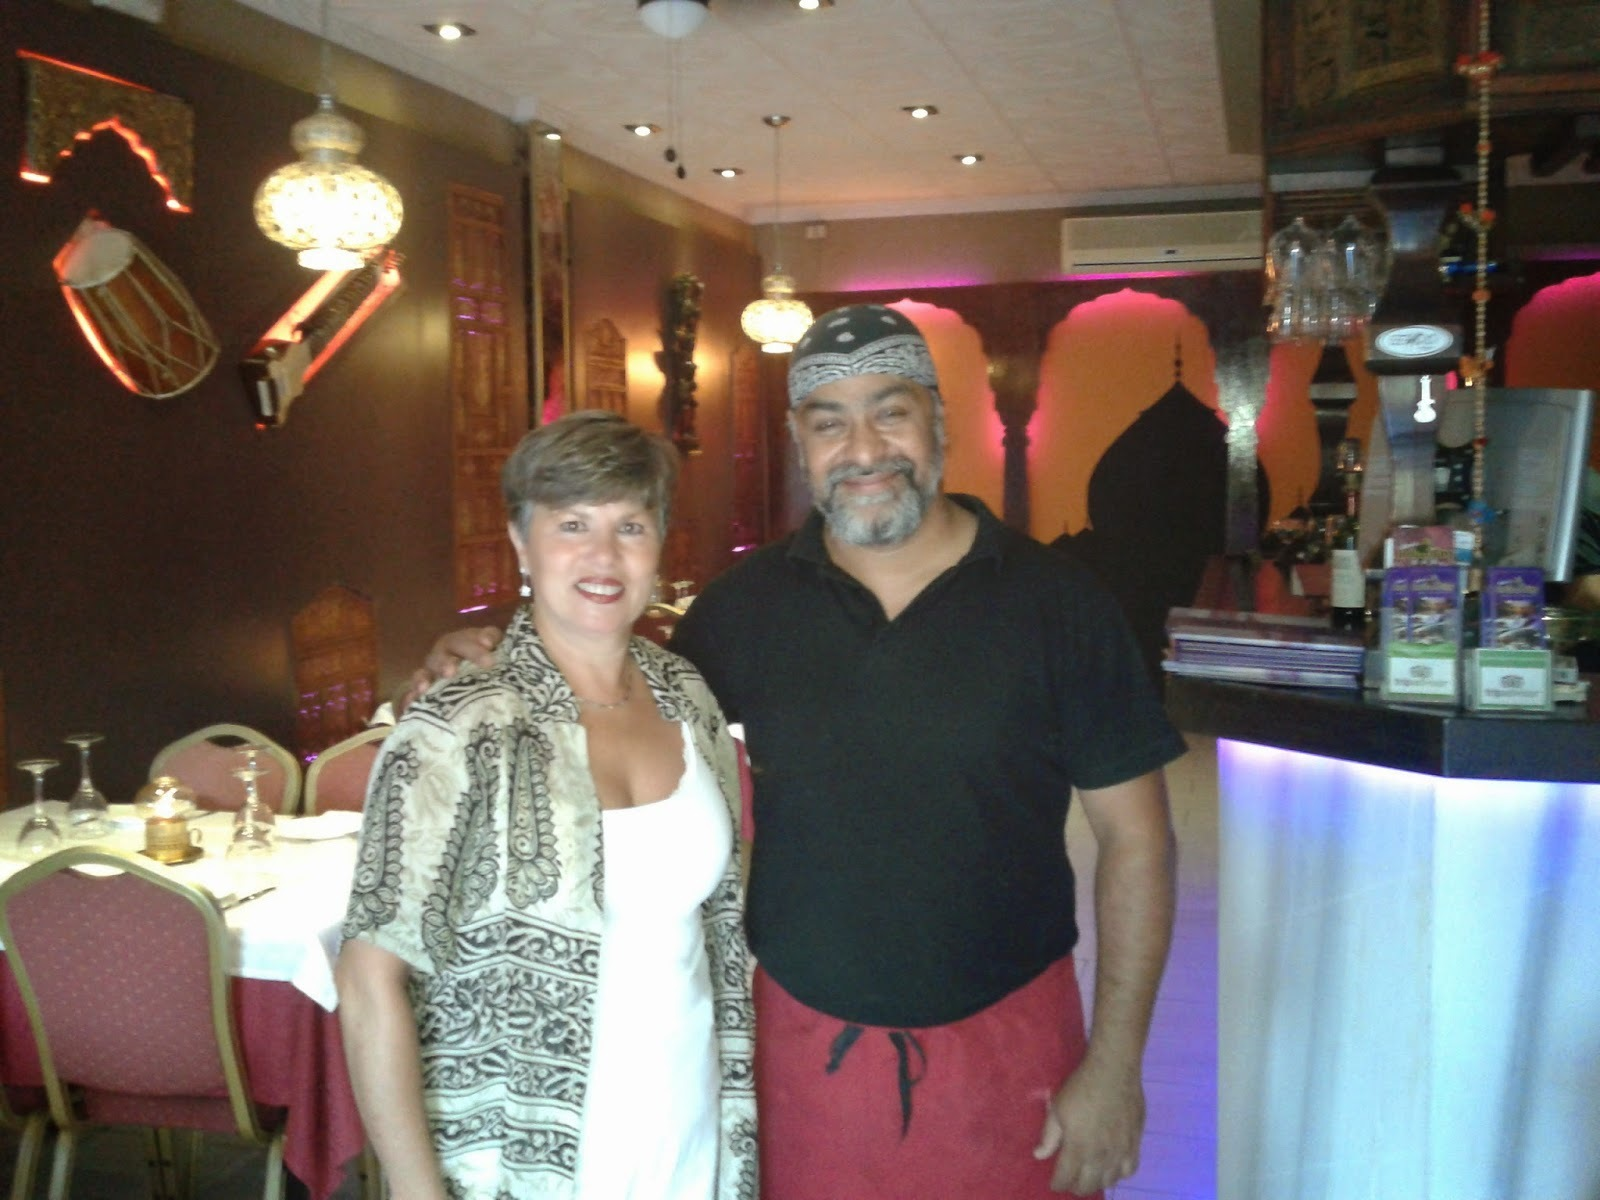 ENCUENTRO CON EL CHEF RAJU (RESTAURANTE ´RAJU´S INDIAN CITY DE BENALMADENA)